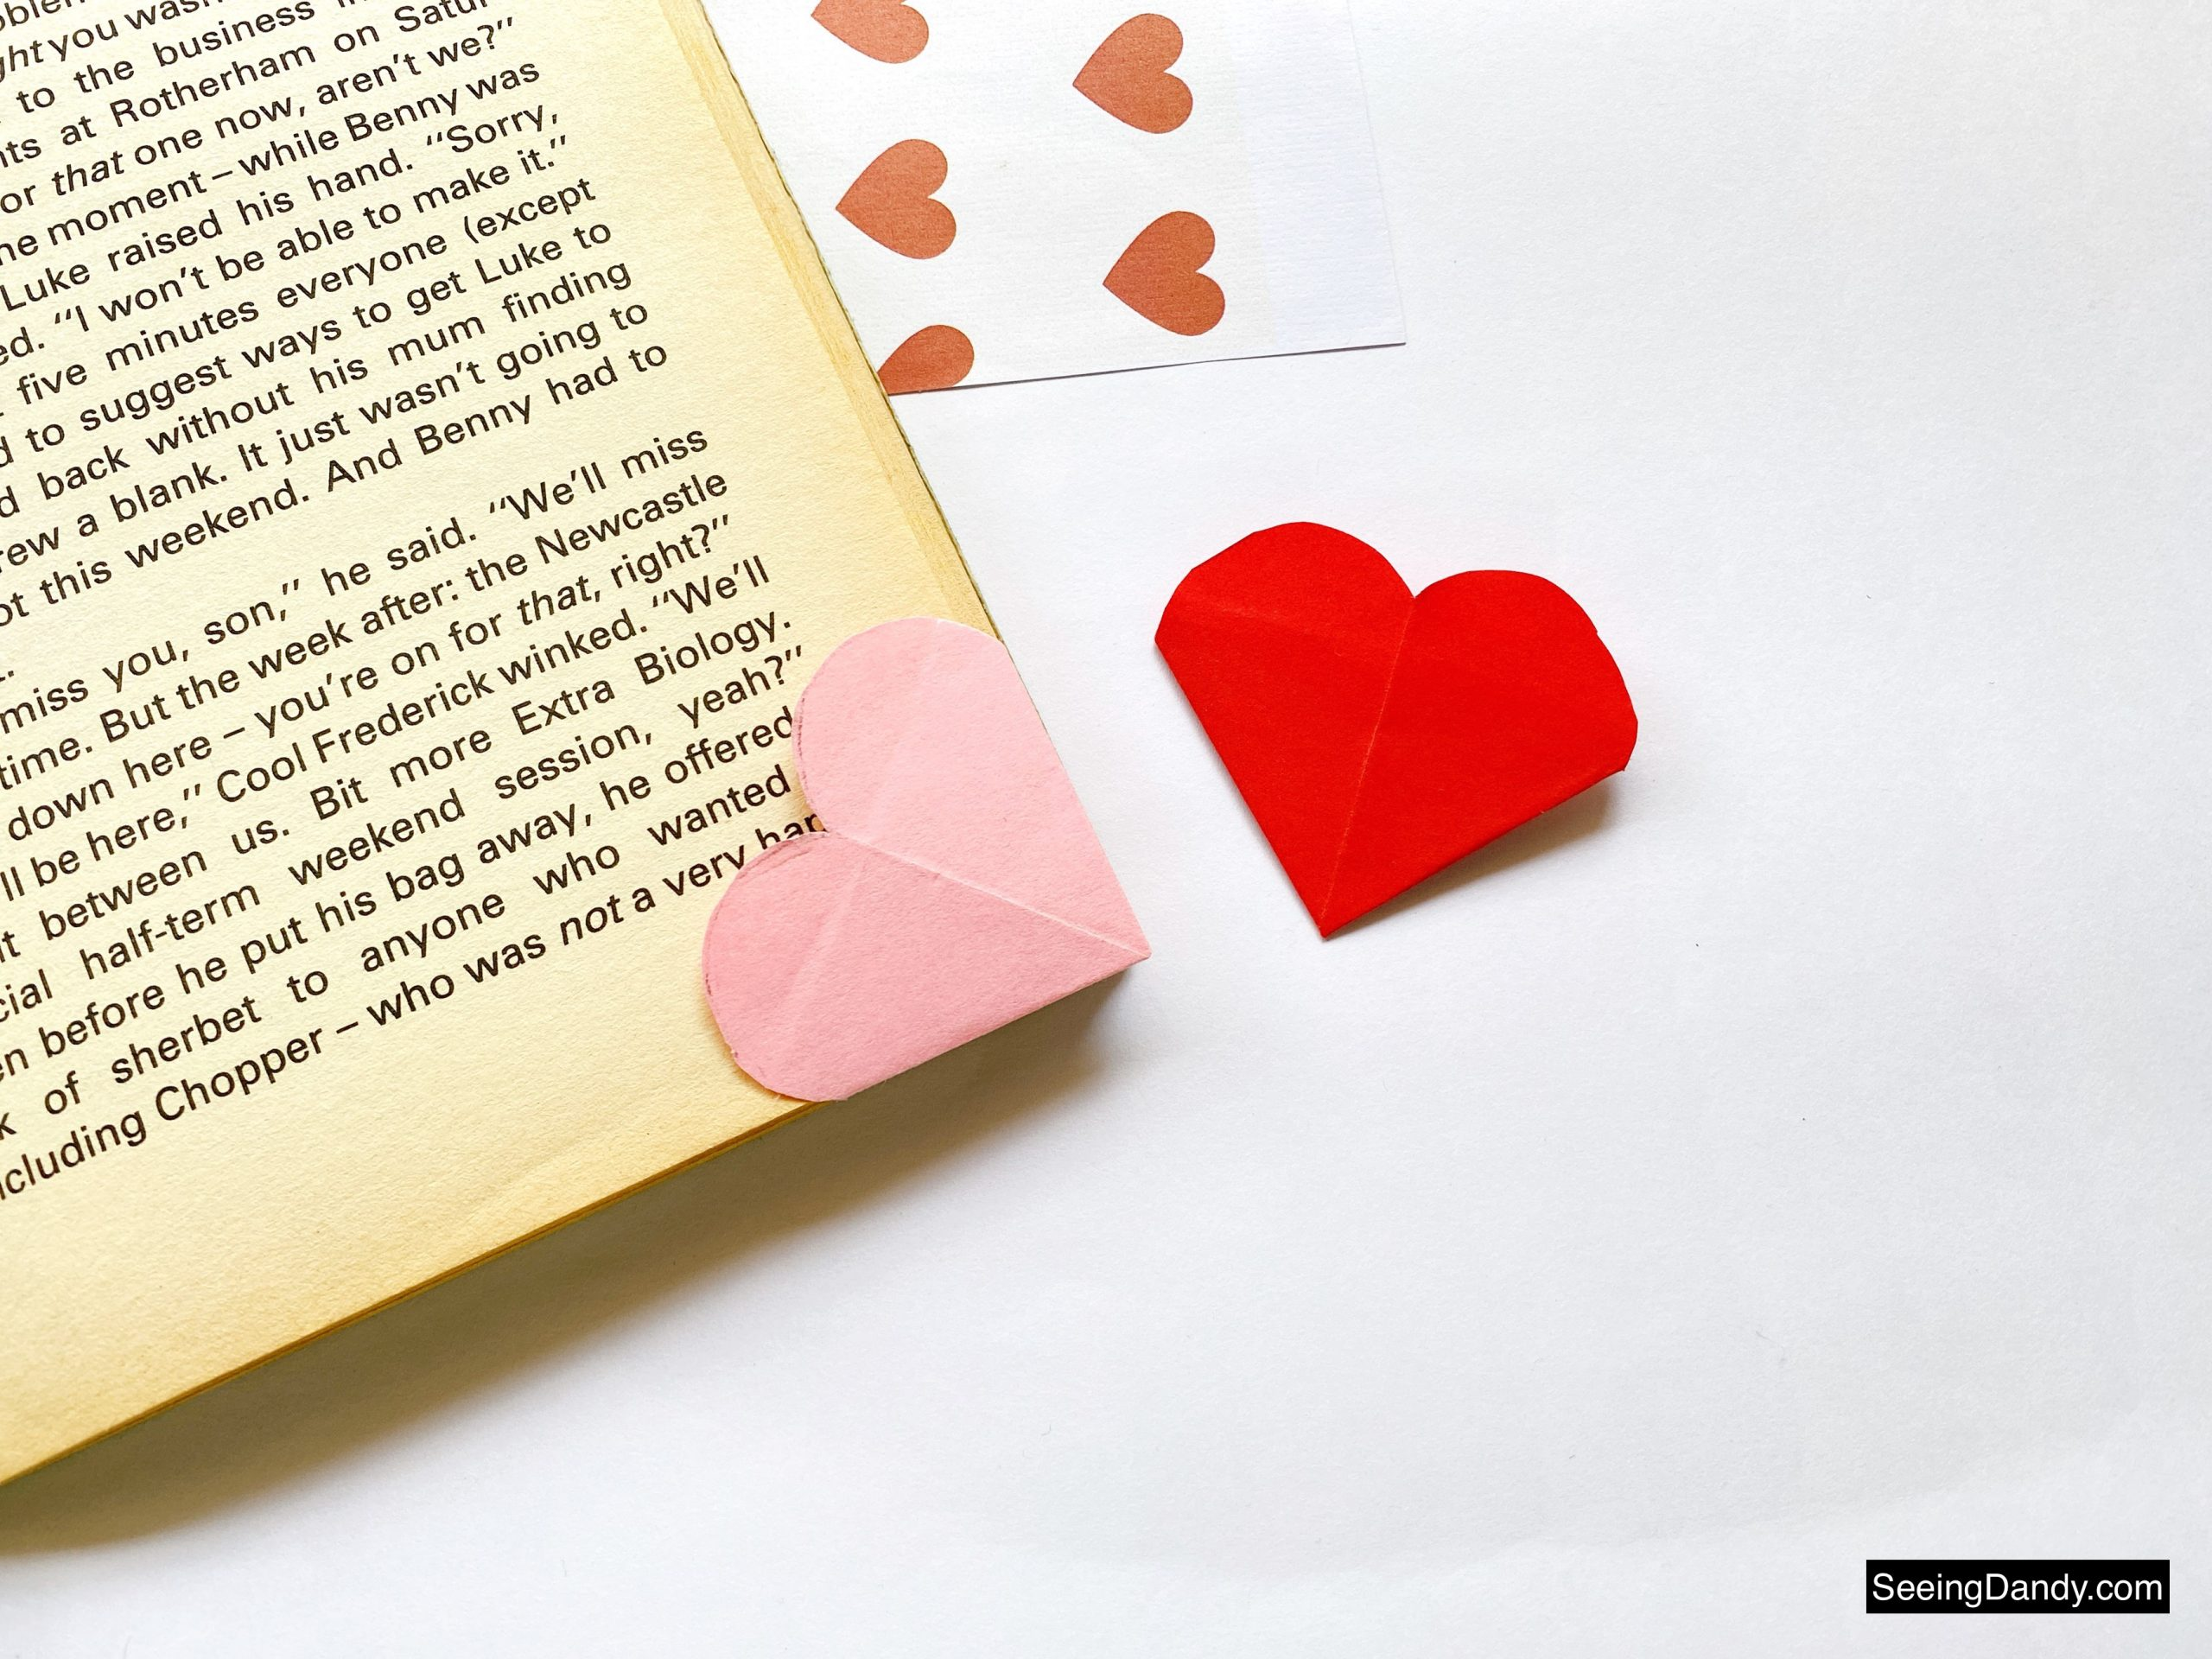 origami heart bookmark, japanese paper folding, paper crafts, valentine card, valentine ideas, easy crafts, diy crafting, school party ideas, valentine party, valentine origami, diy bookmarks